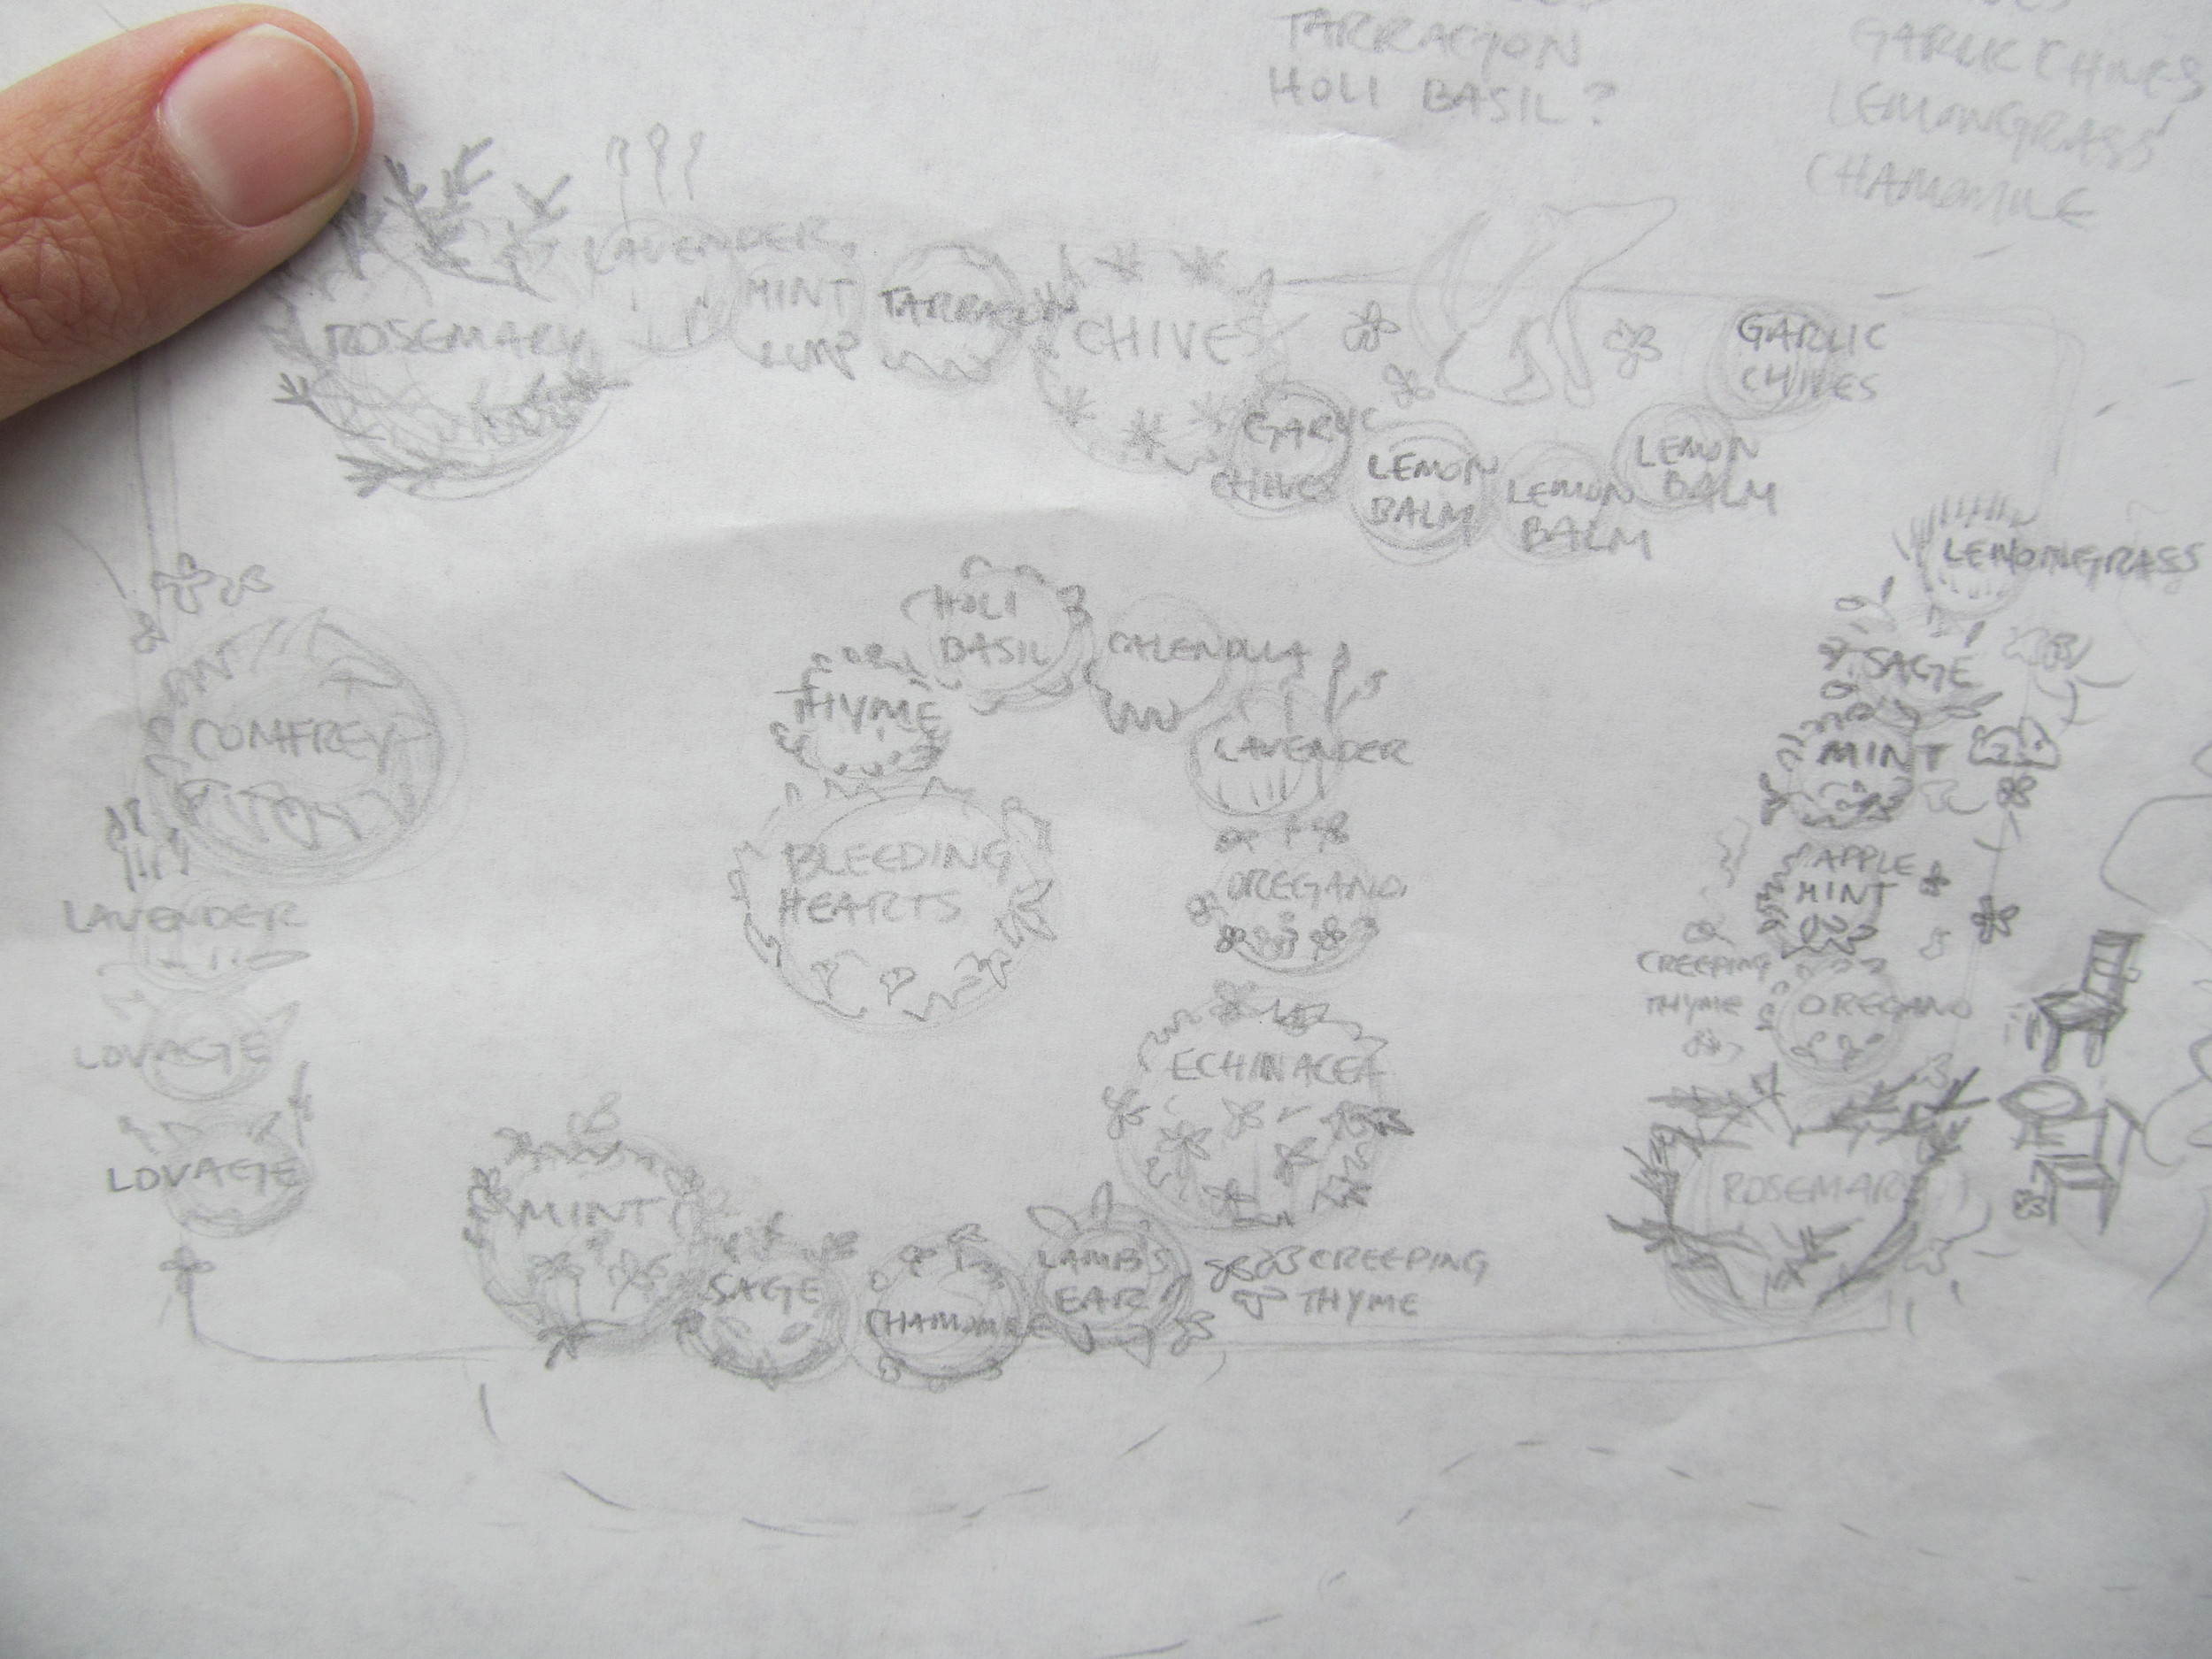 The rough sketch of what this garden will resemble. Egads, the handwriting.